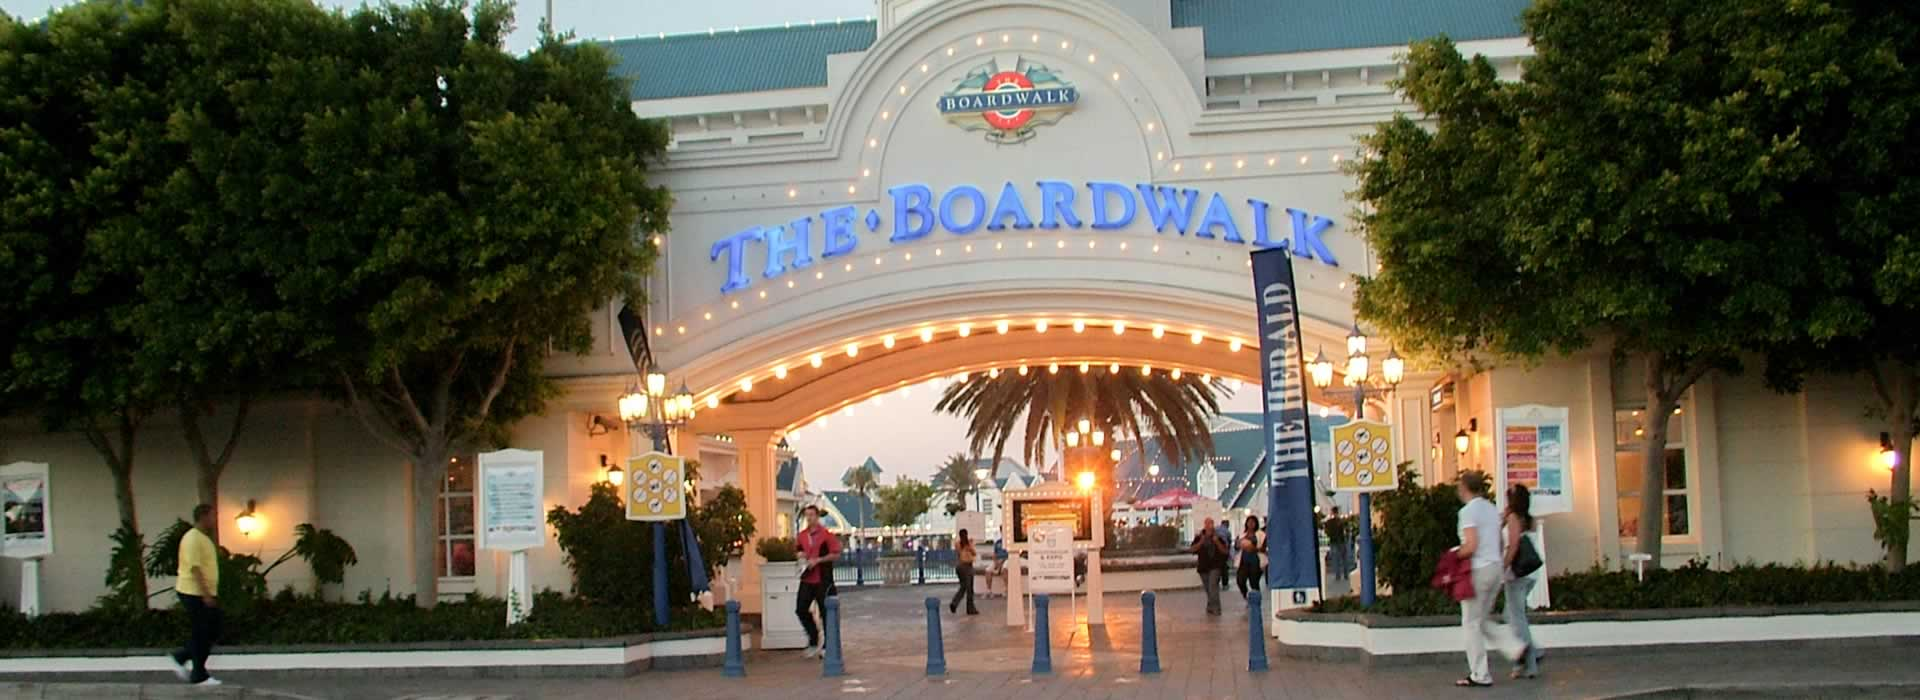 The Boardwalk Hotel and Casino